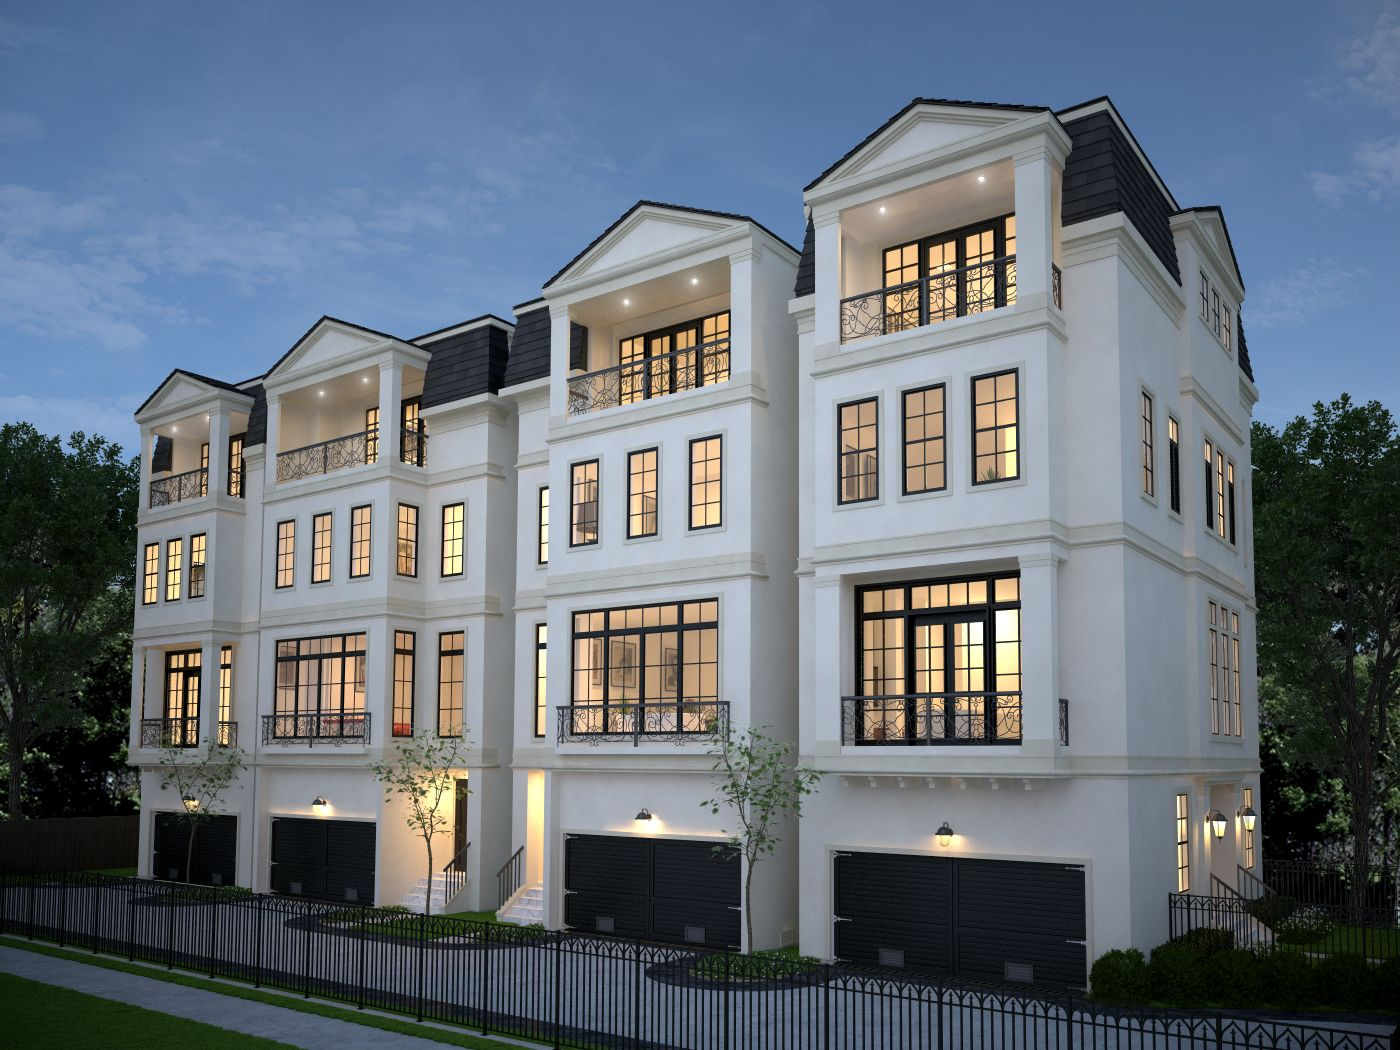 Four 4 story townhomes in houston by preston wood assoc for House plans houston